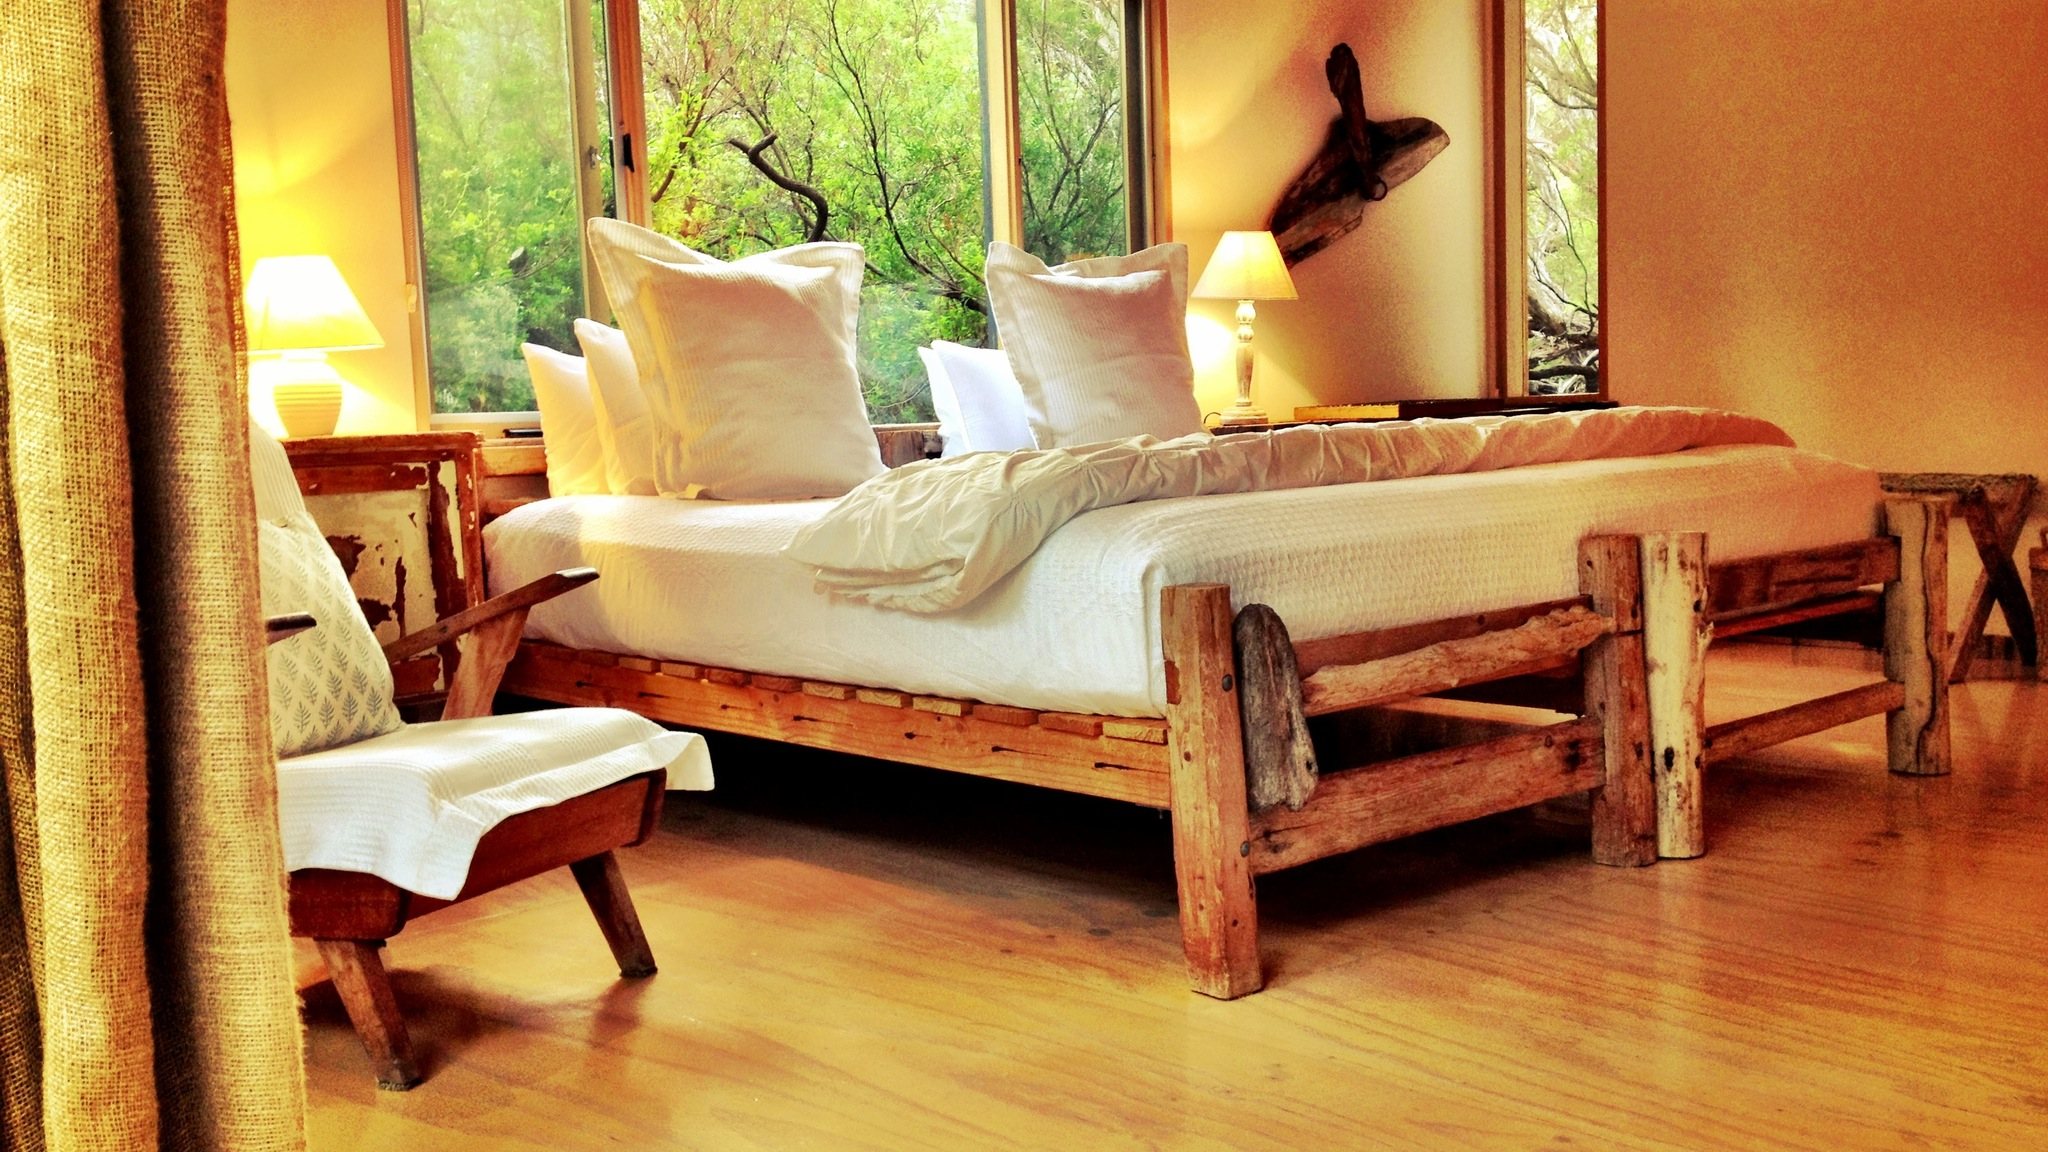 driftwood_bed_crisp_cotton_ kingsize bed_ beach hideaway